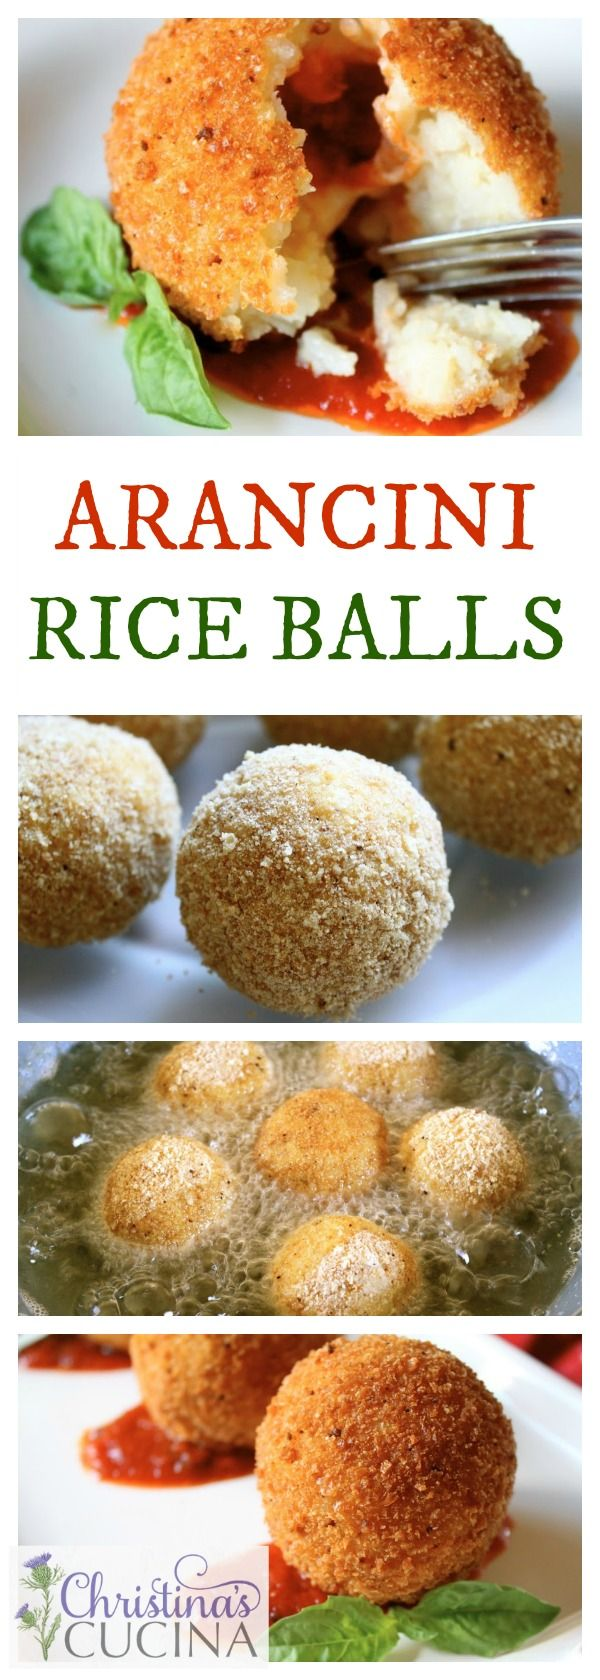 Crunchy deep fried balls of Italian rice are filled with a surprise of tomato sauce and gooey mozzarella cheese! #arancini #riceballs